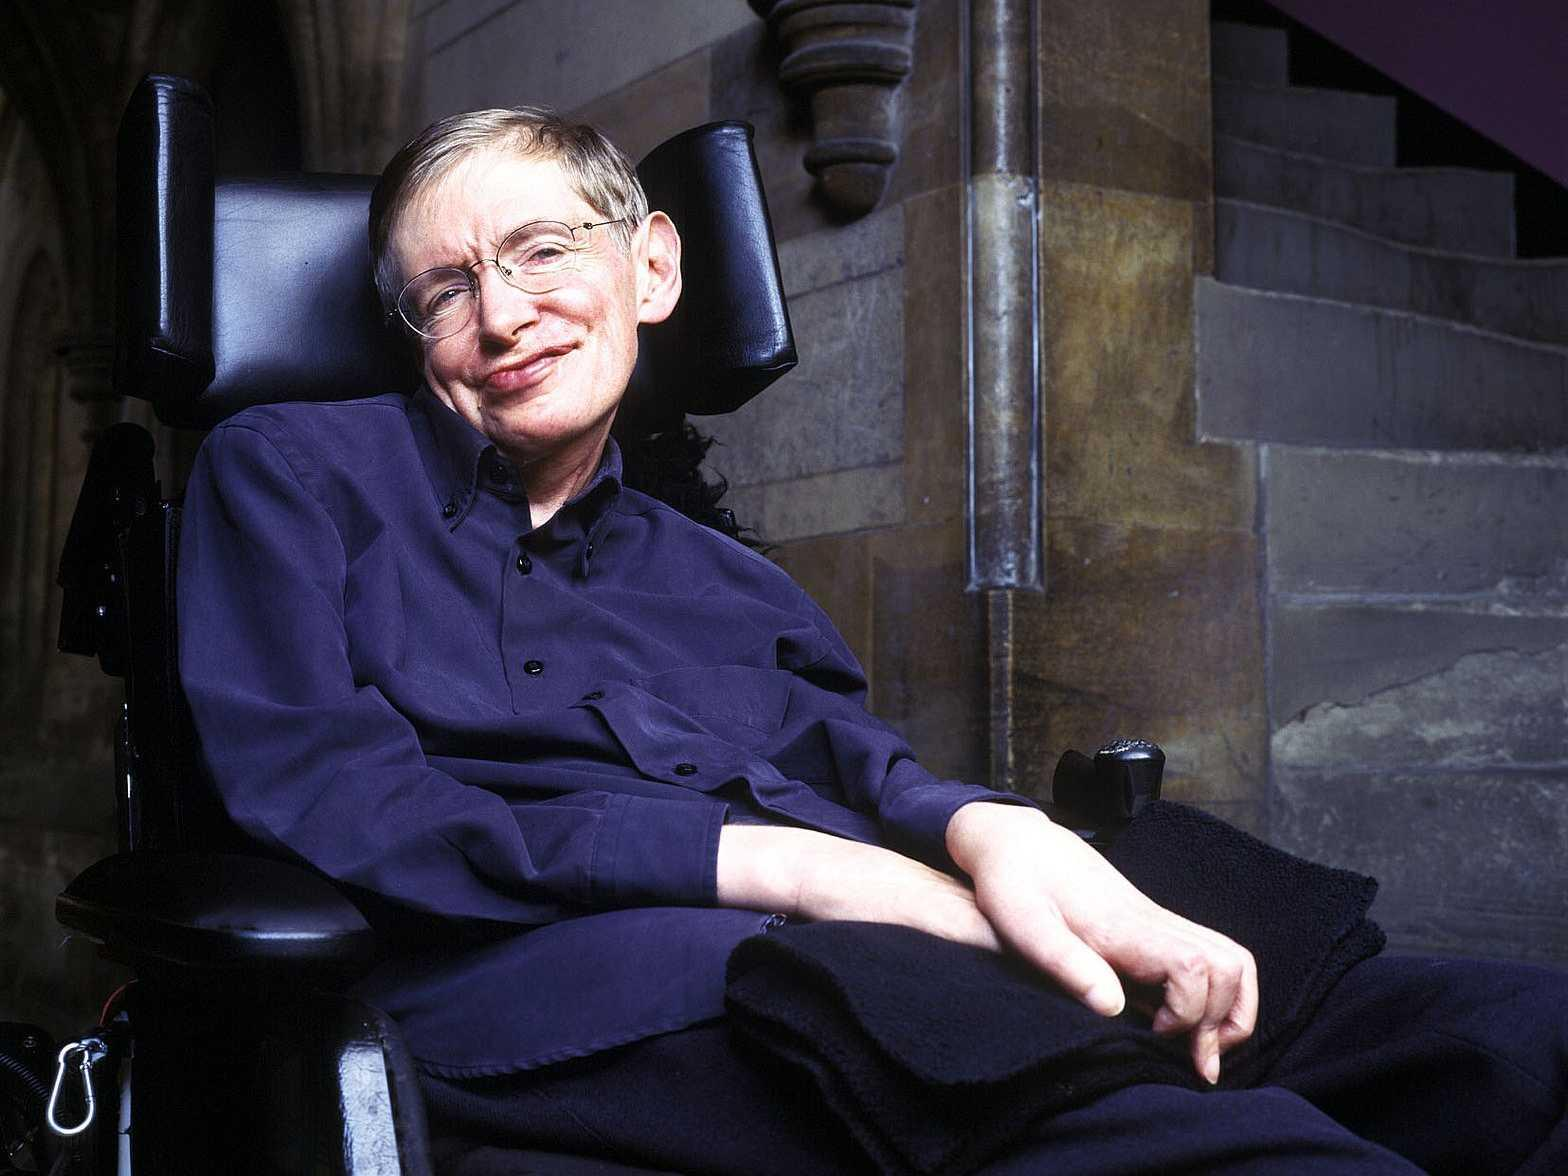 Stephen Hawking is a theoretical physics genius, but the mystery he finds most intriguing is women